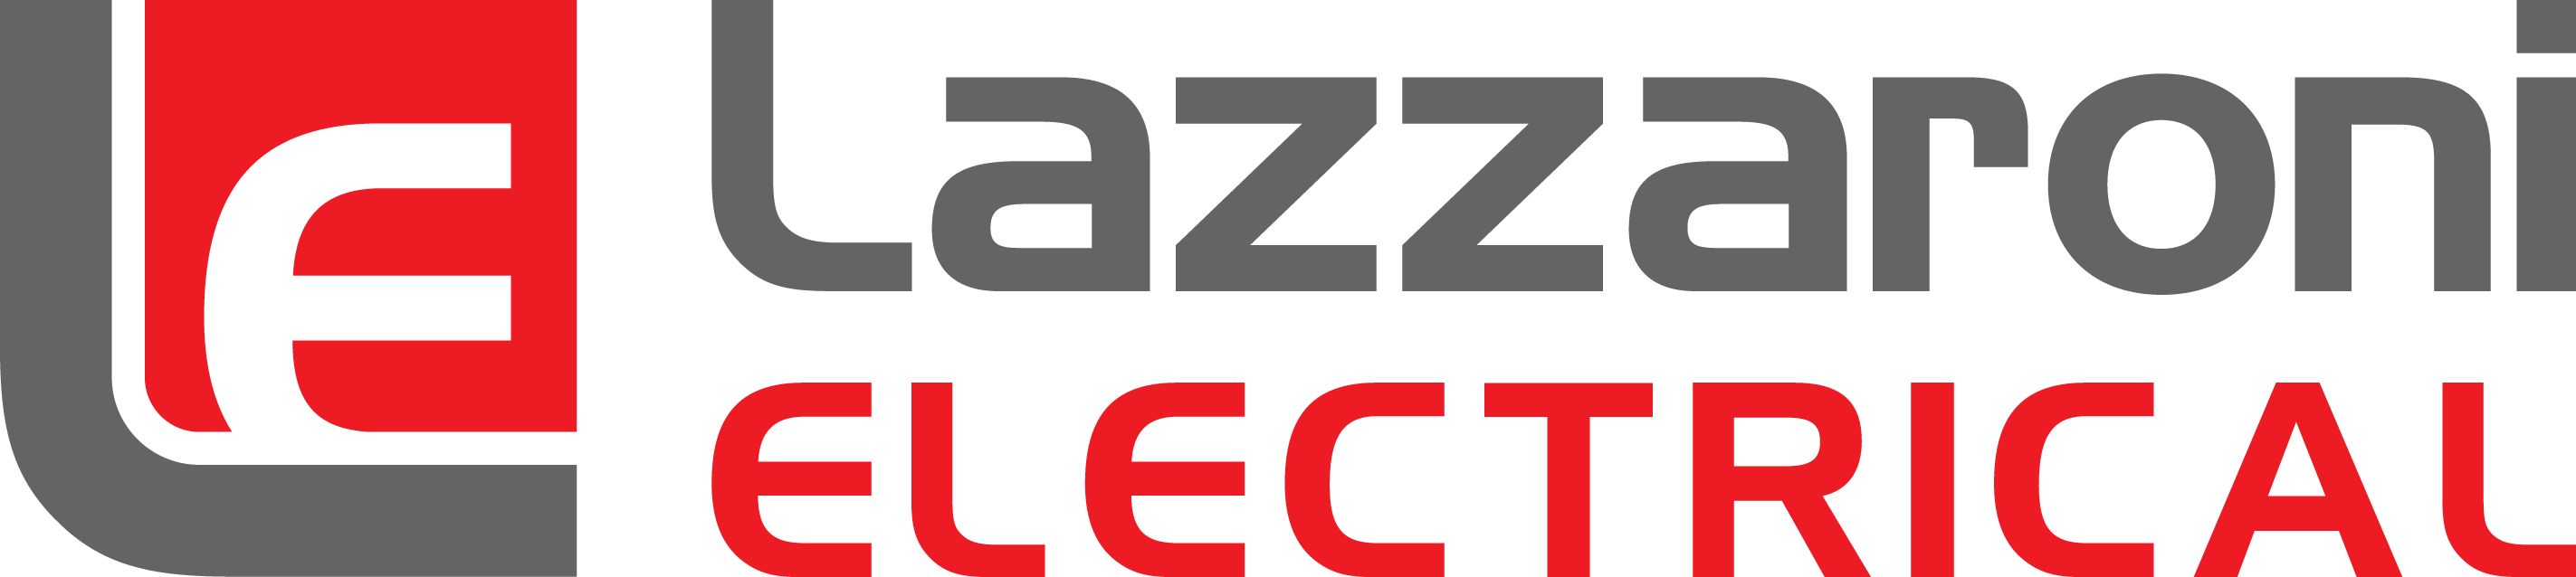 Lazzaroni Electrical | Townsville